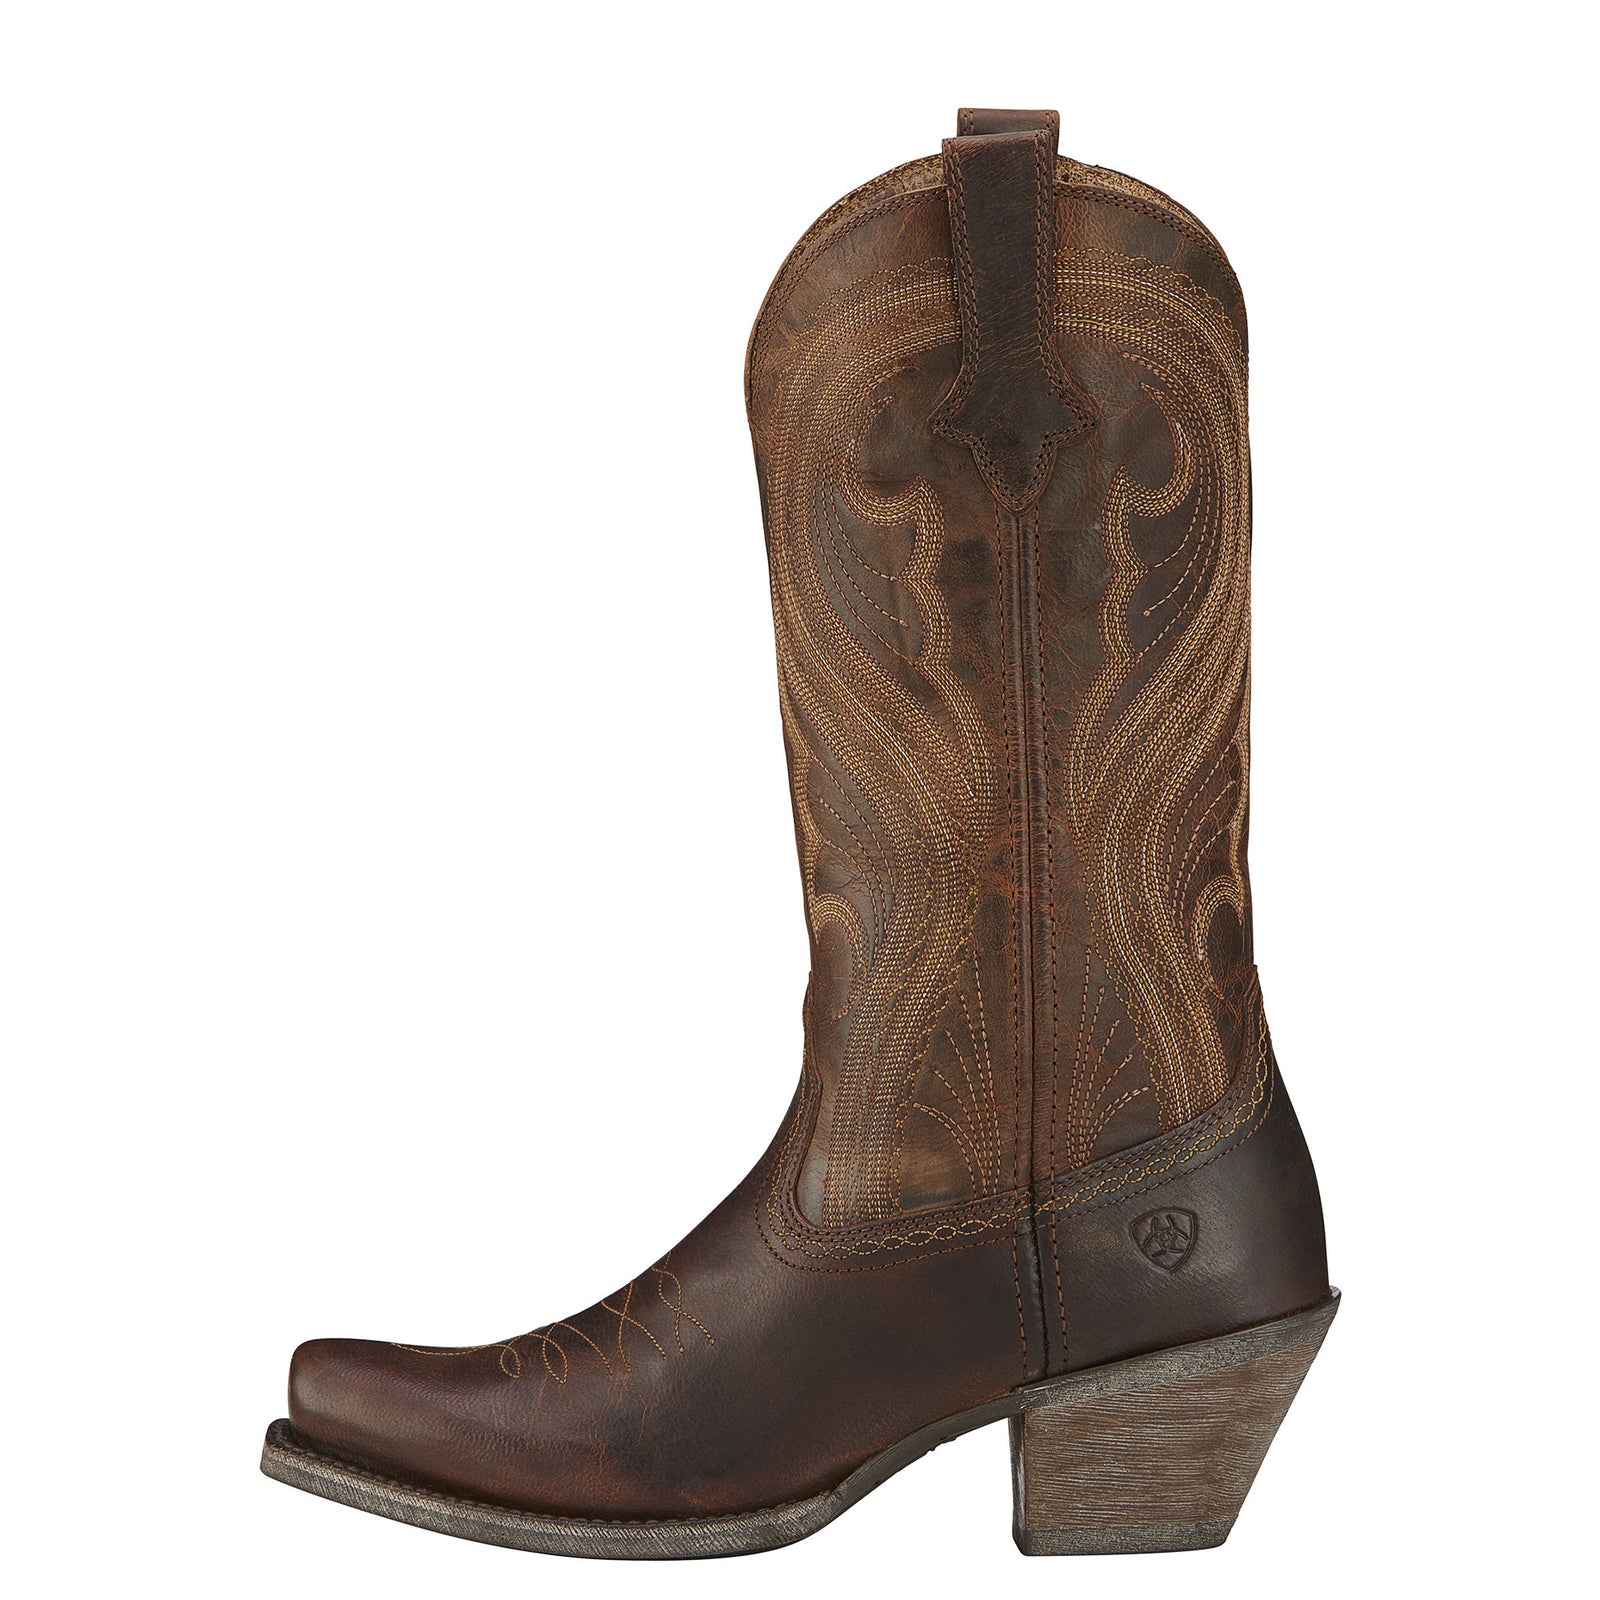 Ariat Women's Lively Sassy Brown Western Fashion Boots - VaqueroBoots.com - 3